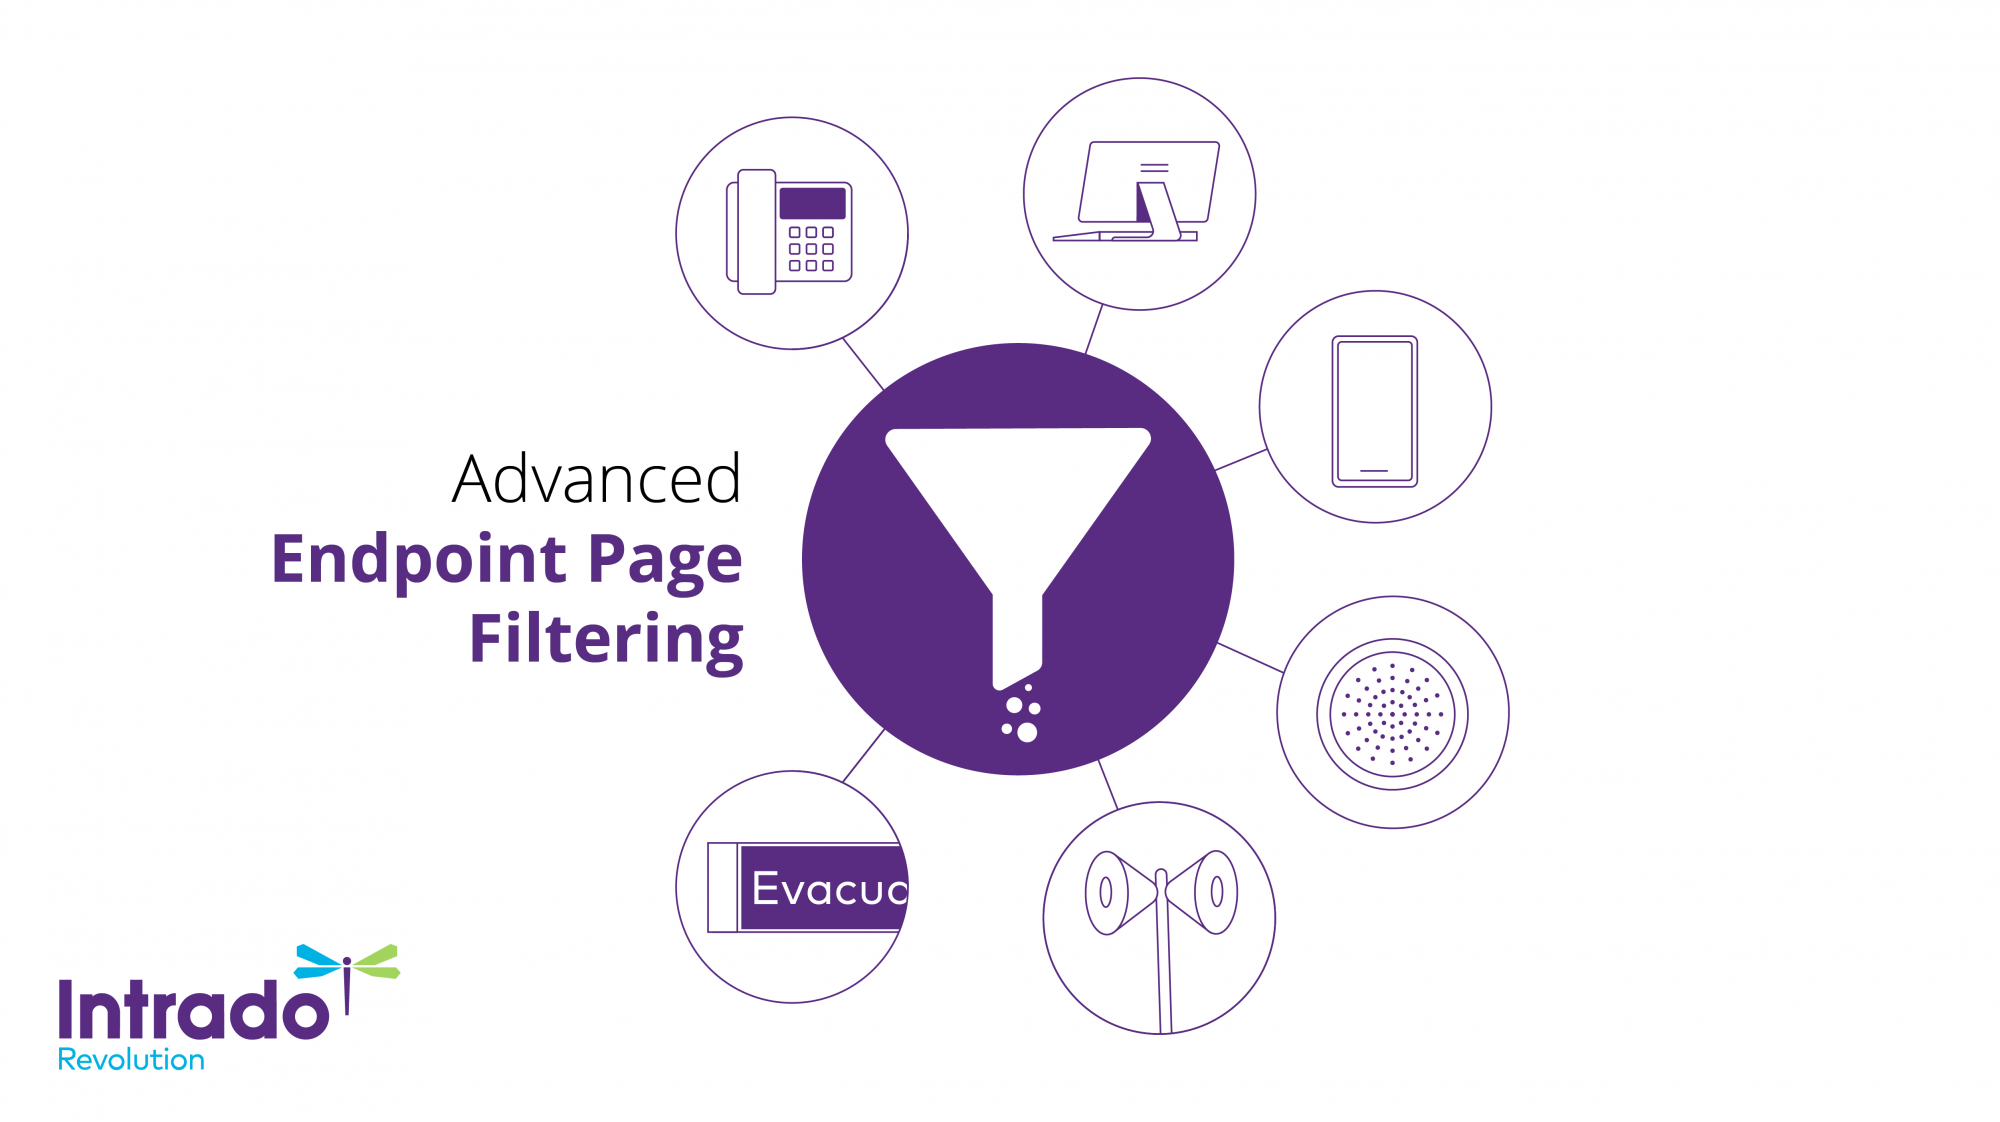 Advanced Endpoint Page Filtering